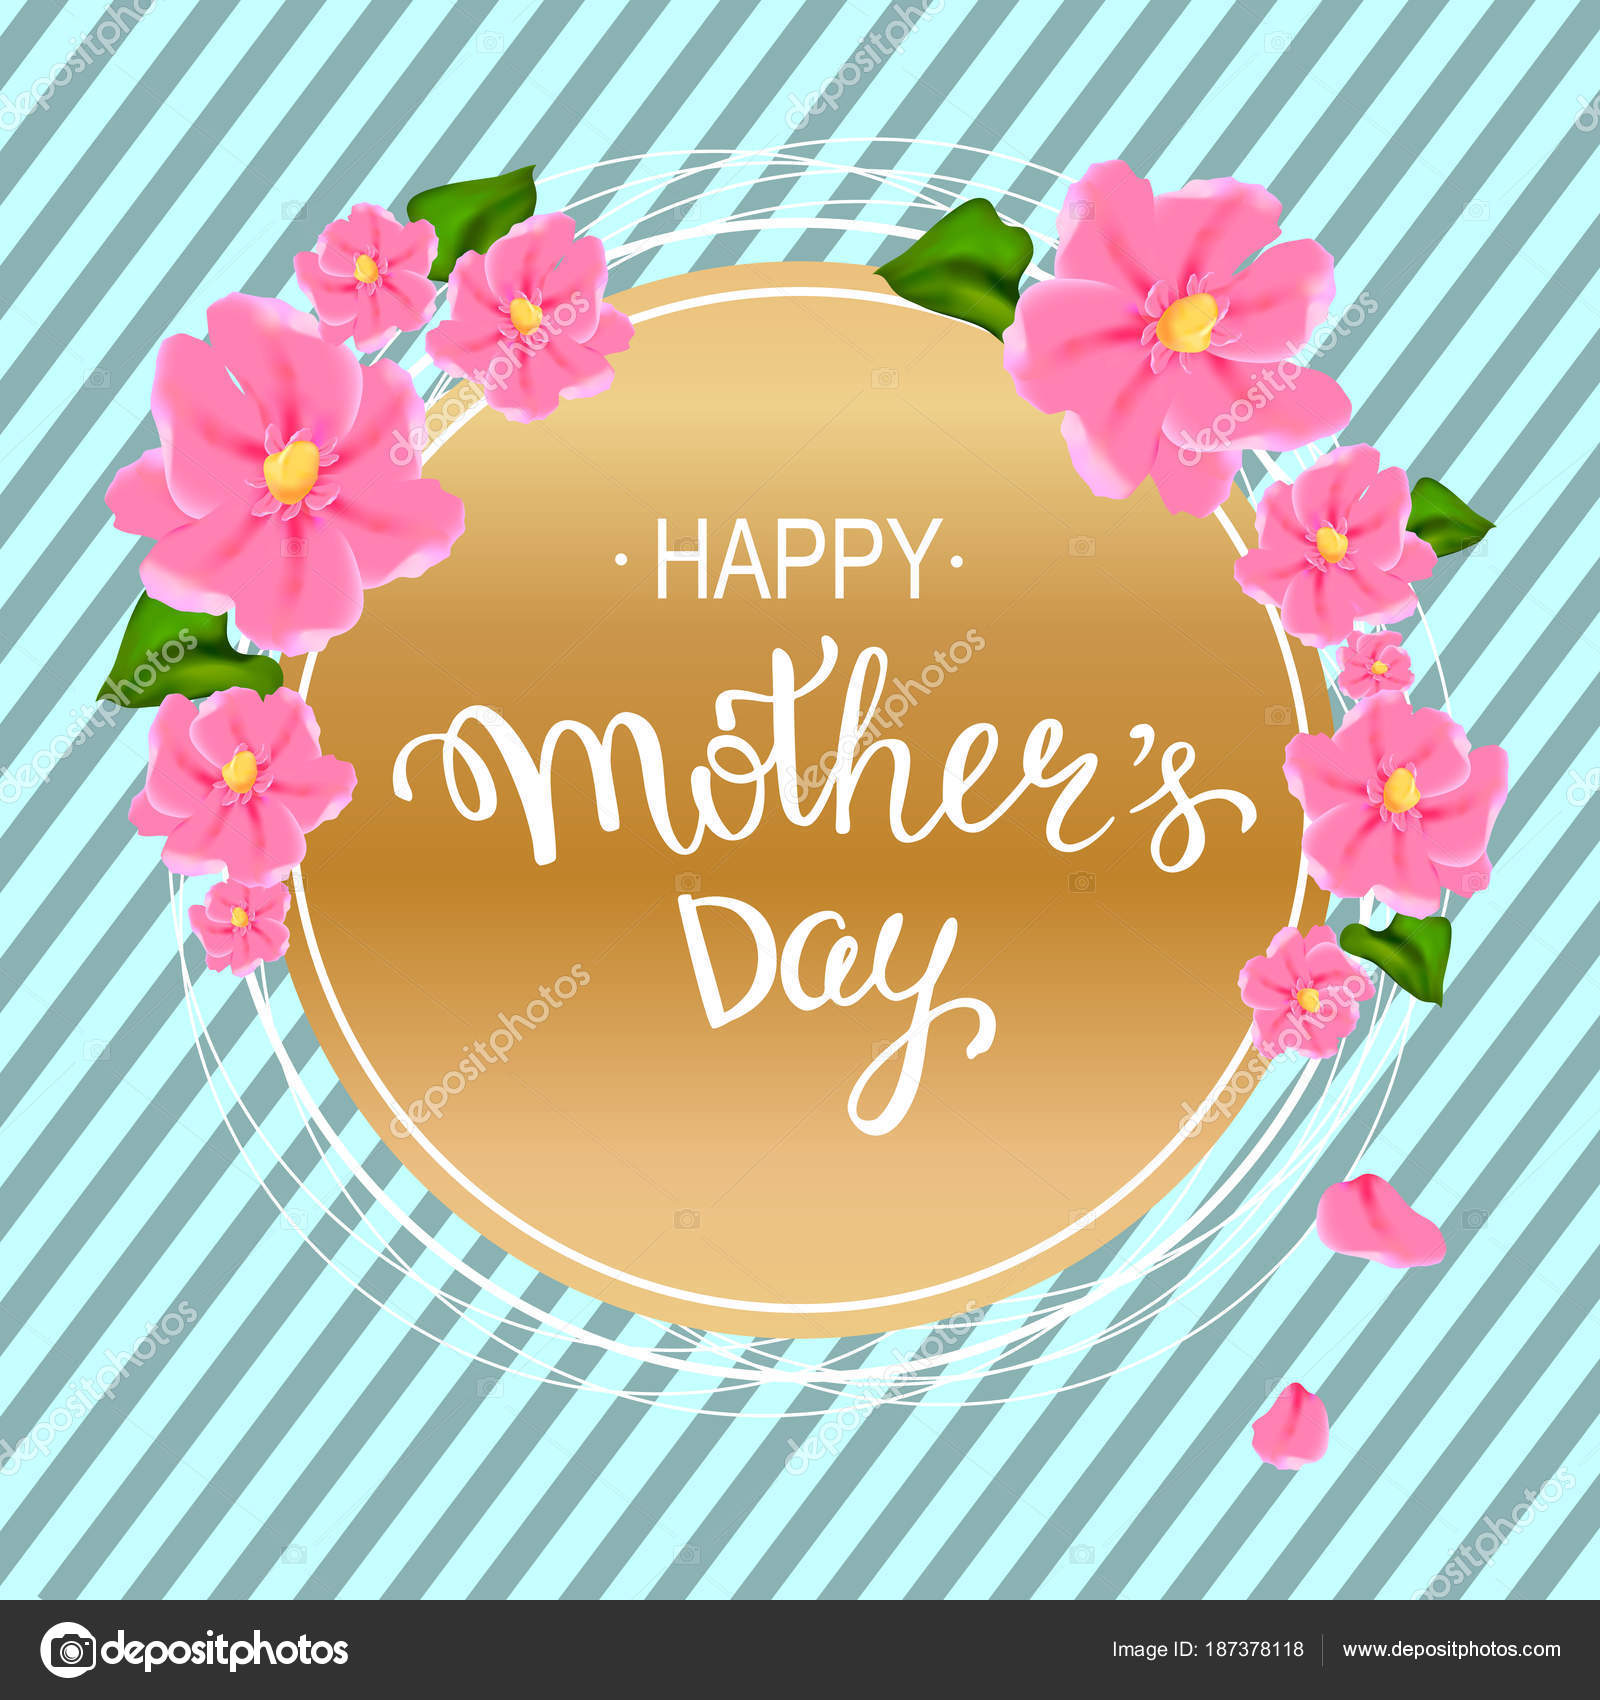 Happy mothers day layout design with pink flowers hand letteri happy mothers day layout design with pink flowers hand lettering striped background vector illustration cute feminine design for menu flyer card mightylinksfo